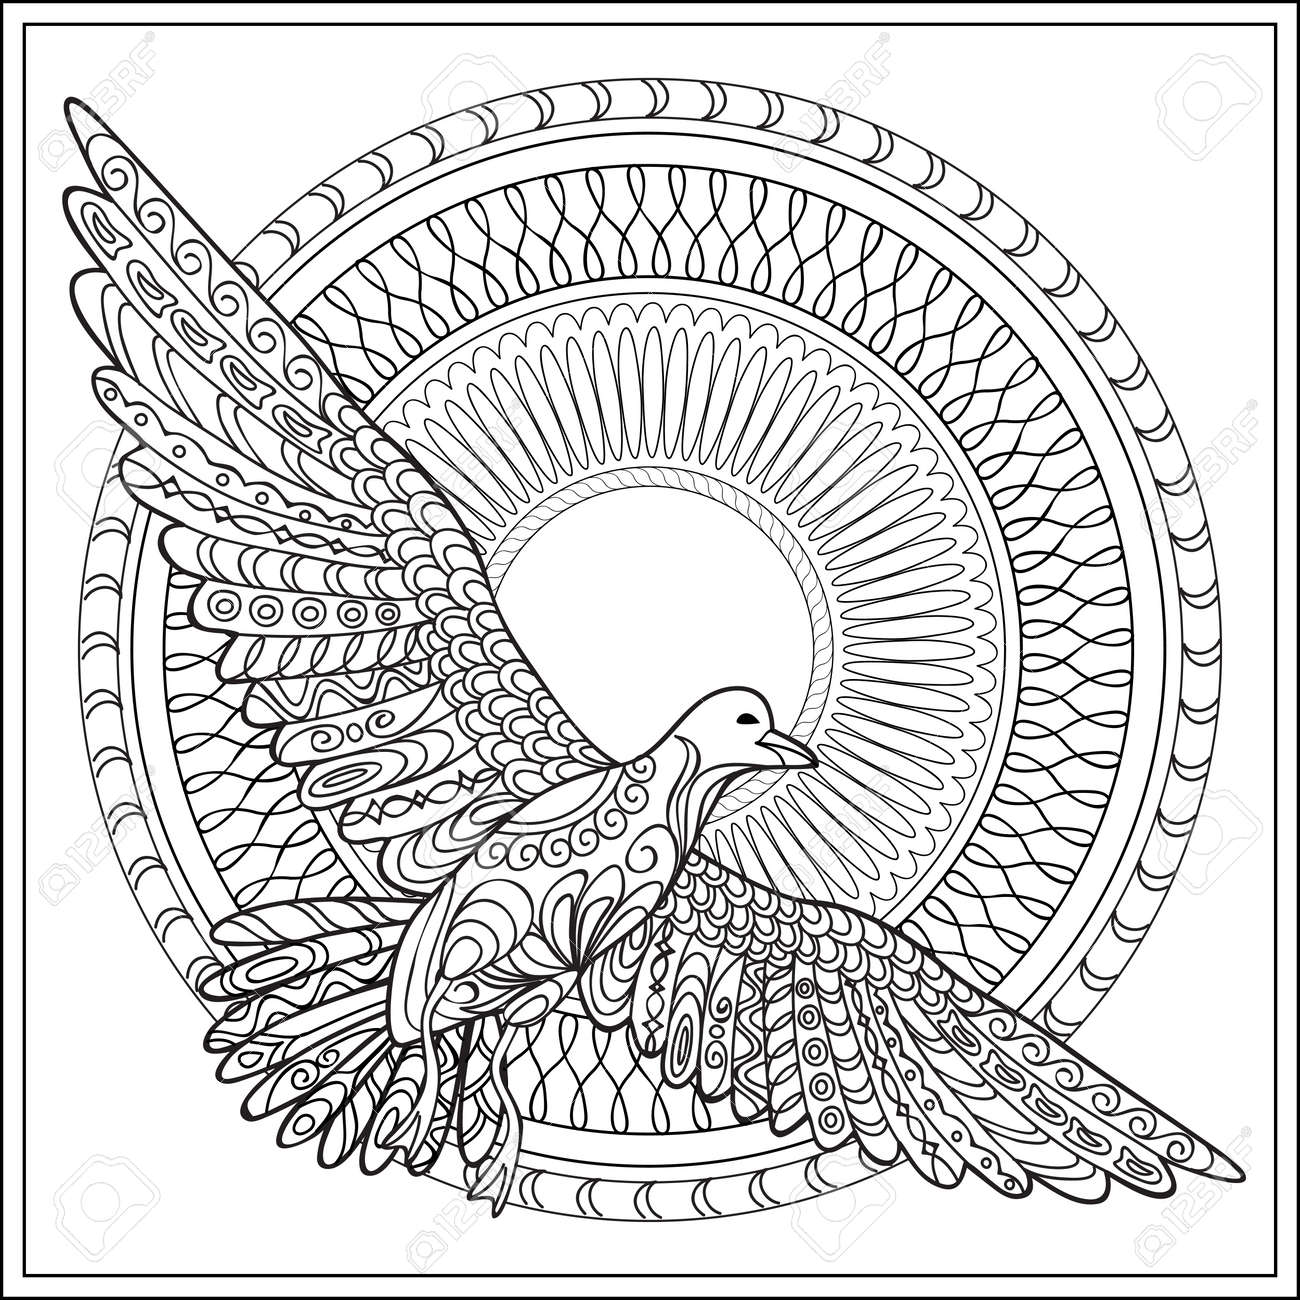 hand drawn decorated isolated sea bird with mandala on the white